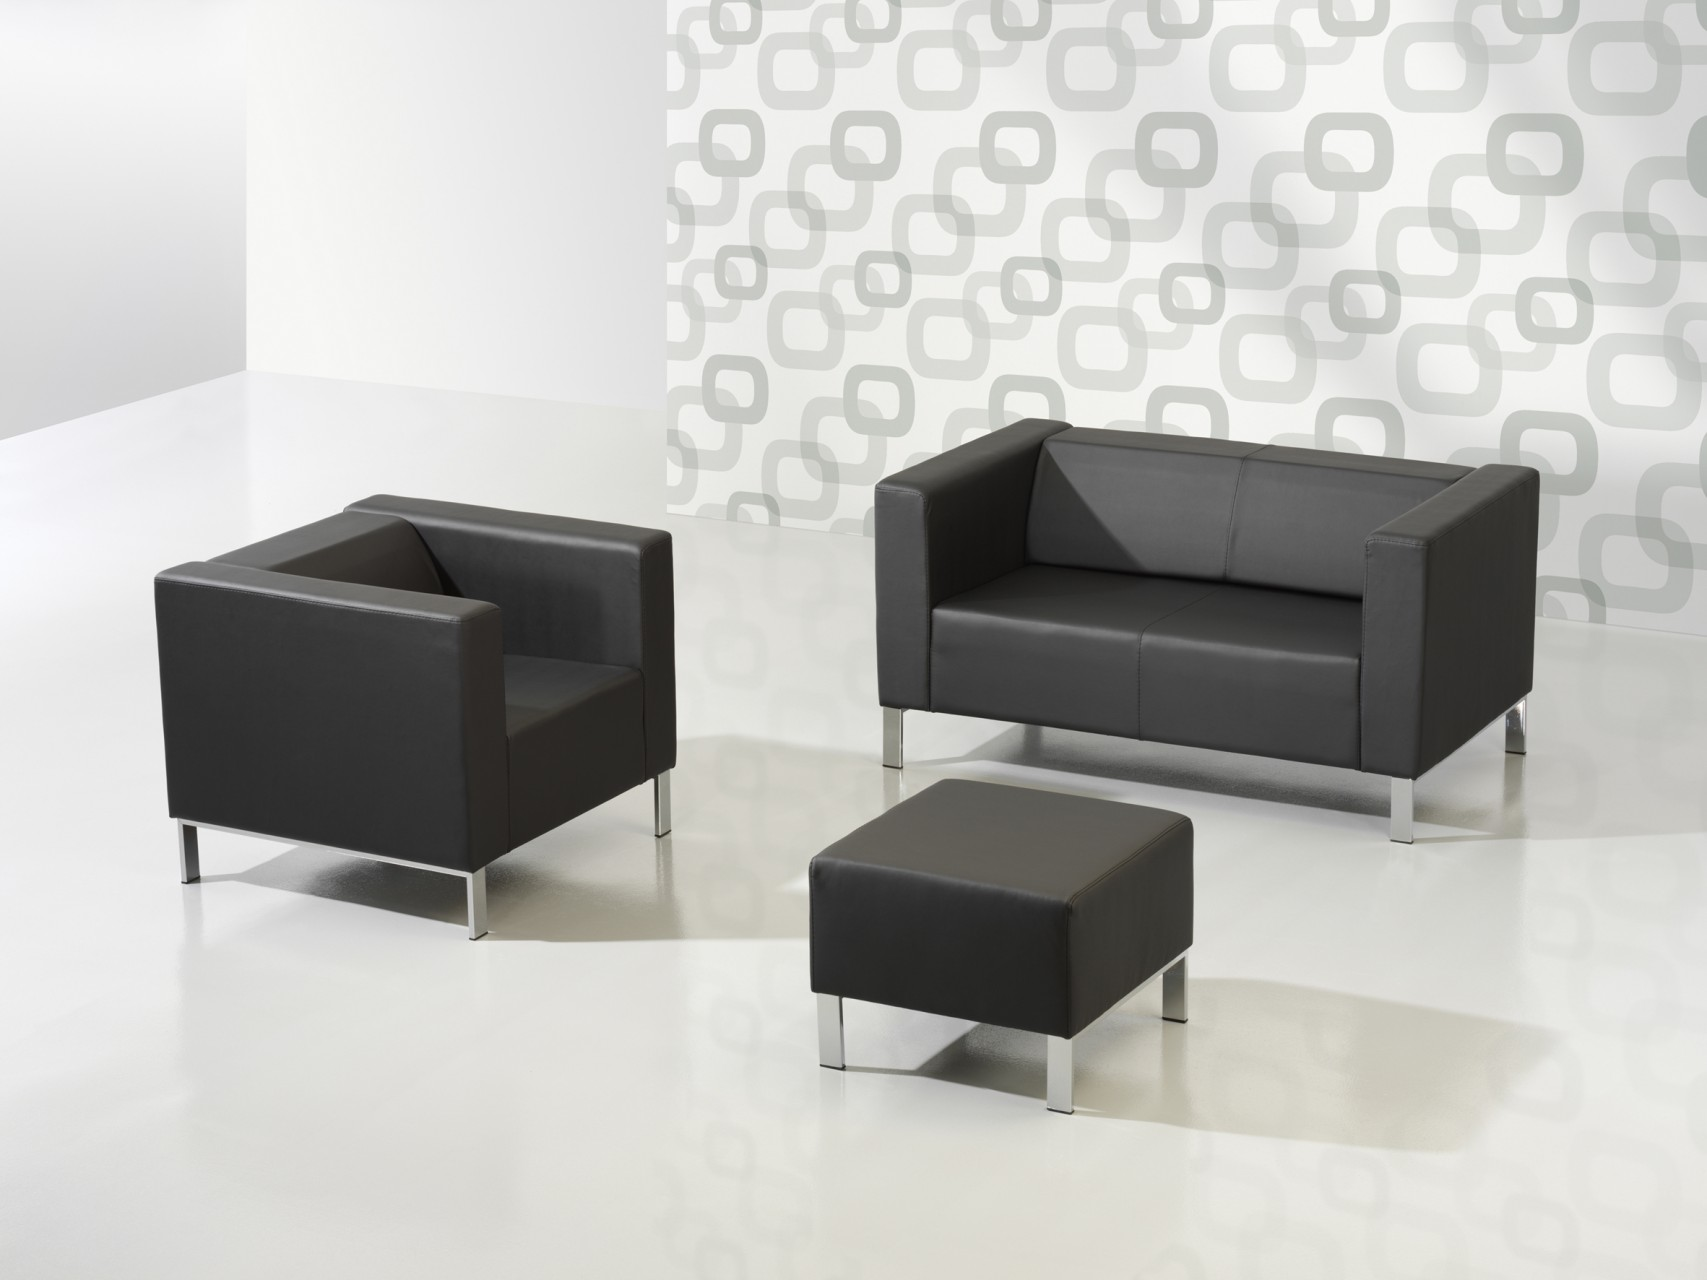 canap 3 places kube achat fauteuils d 39 accueil canap s. Black Bedroom Furniture Sets. Home Design Ideas